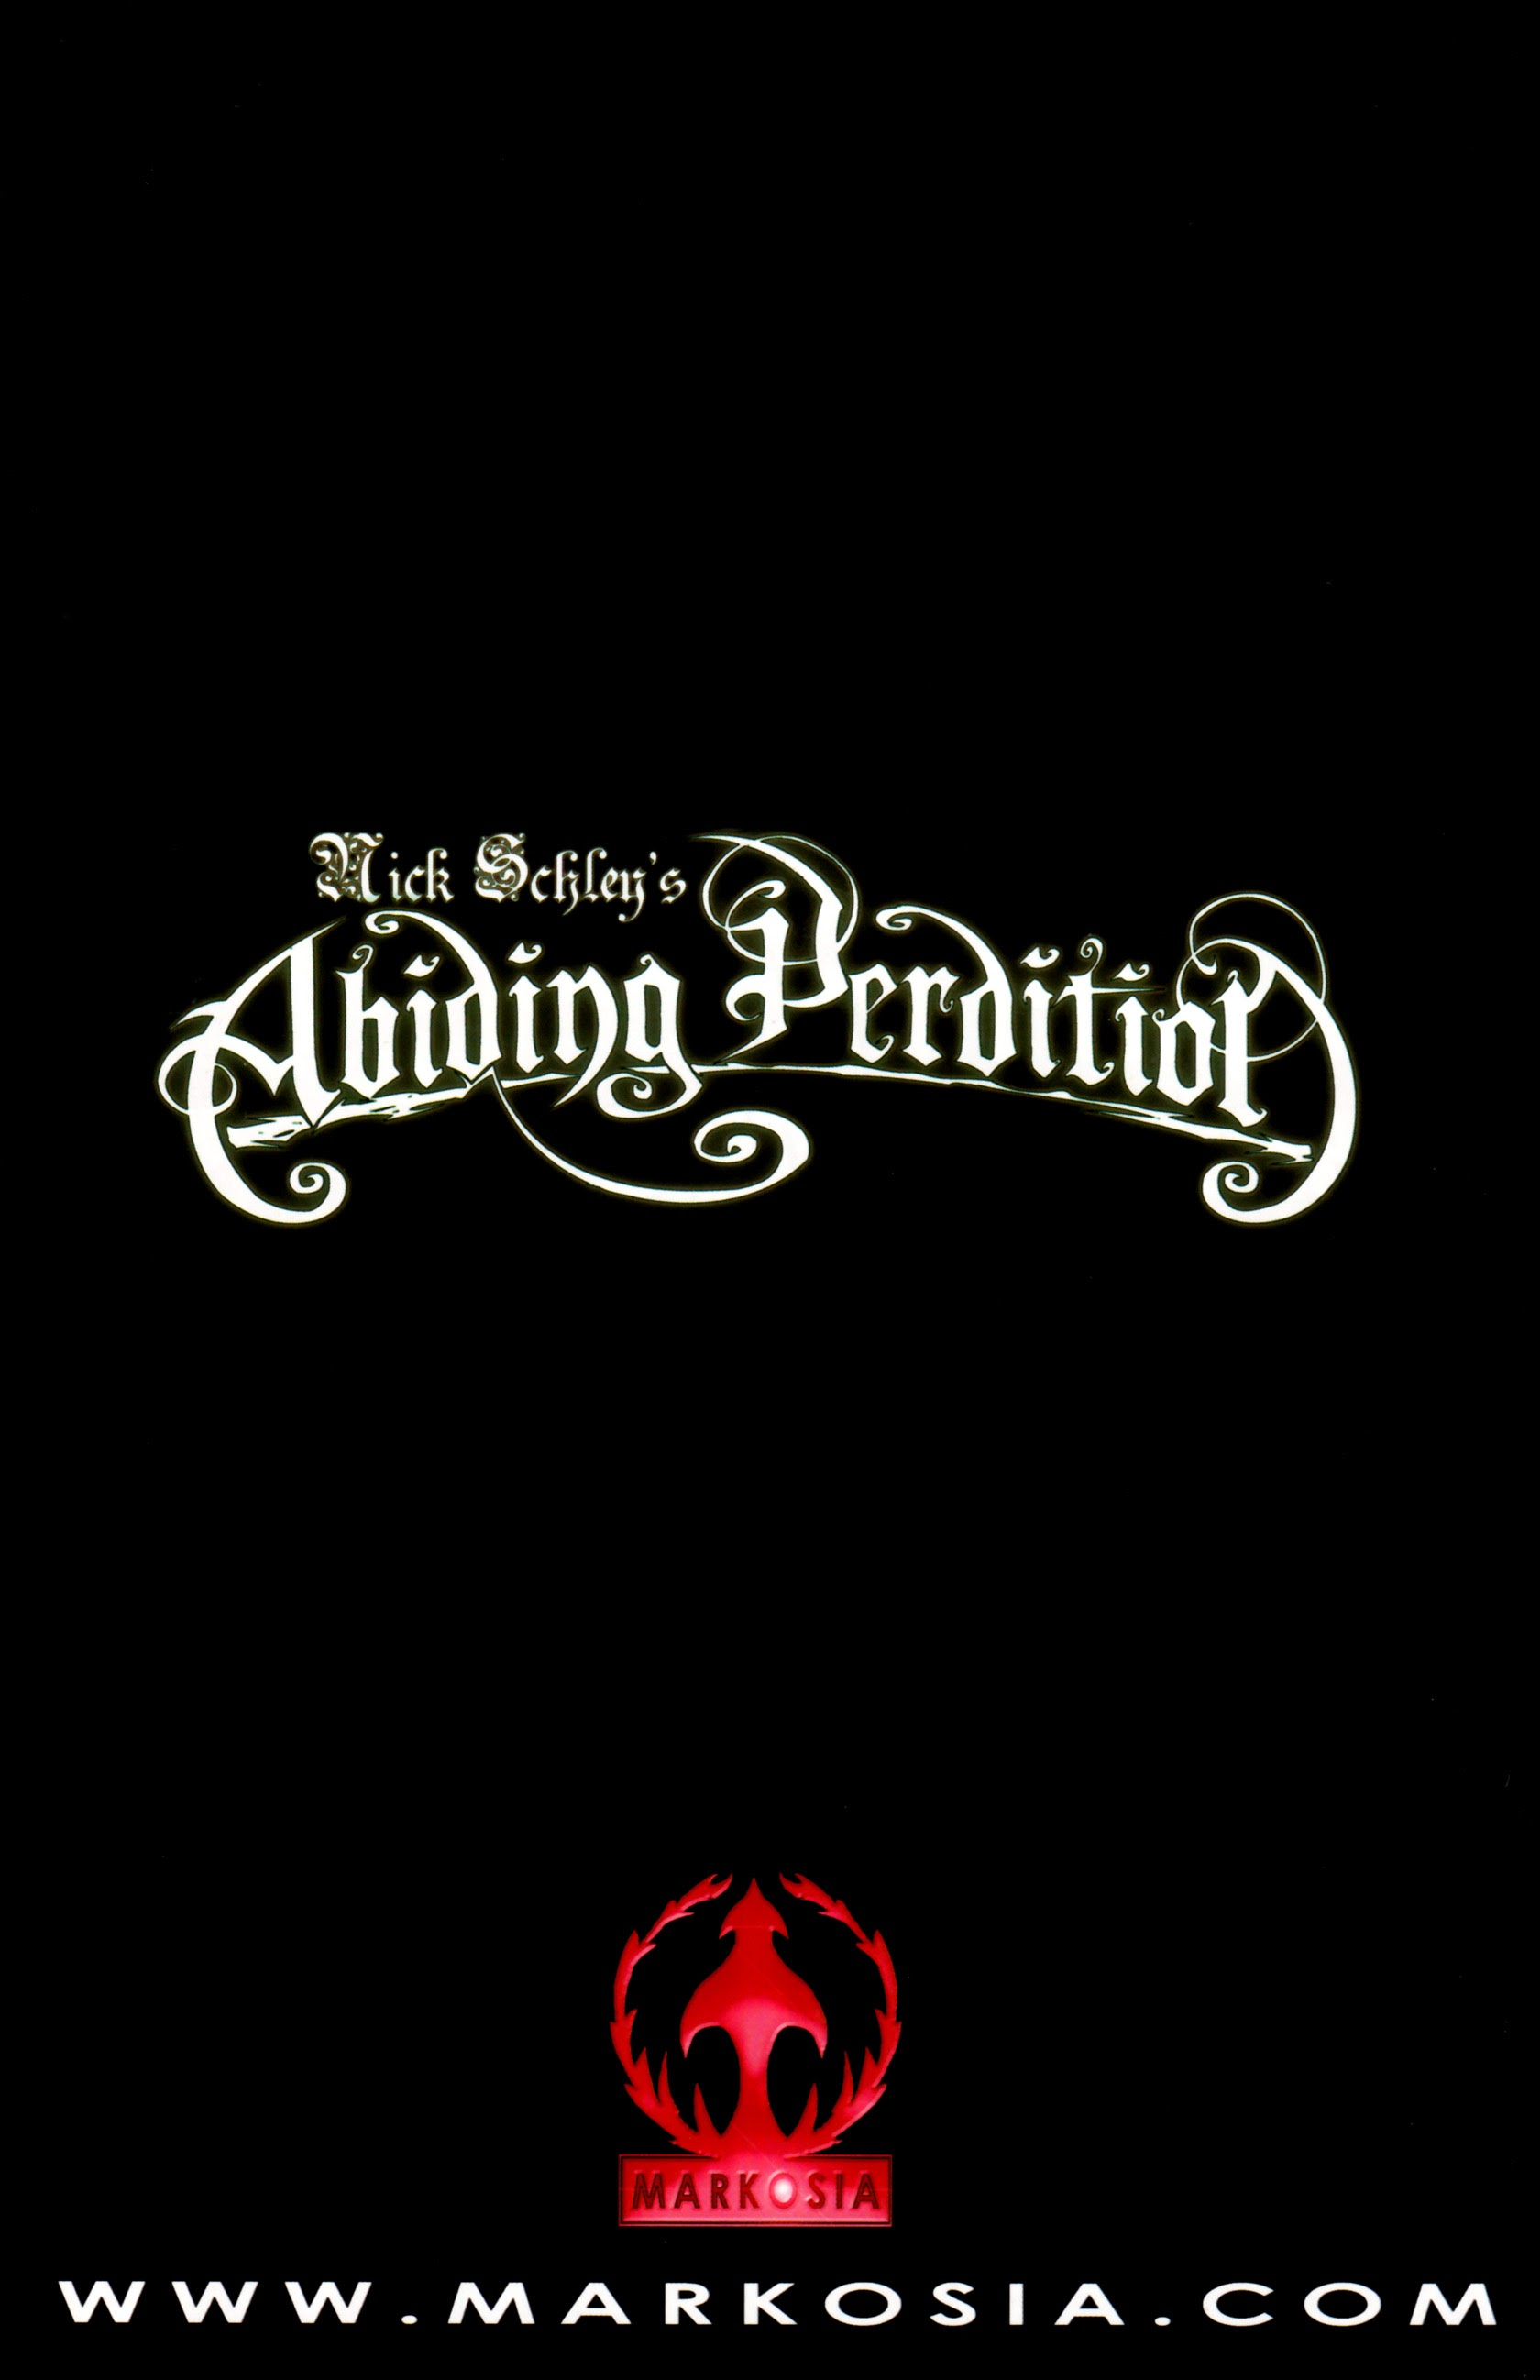 Read online Abiding Perdition comic -  Issue #5 - 36